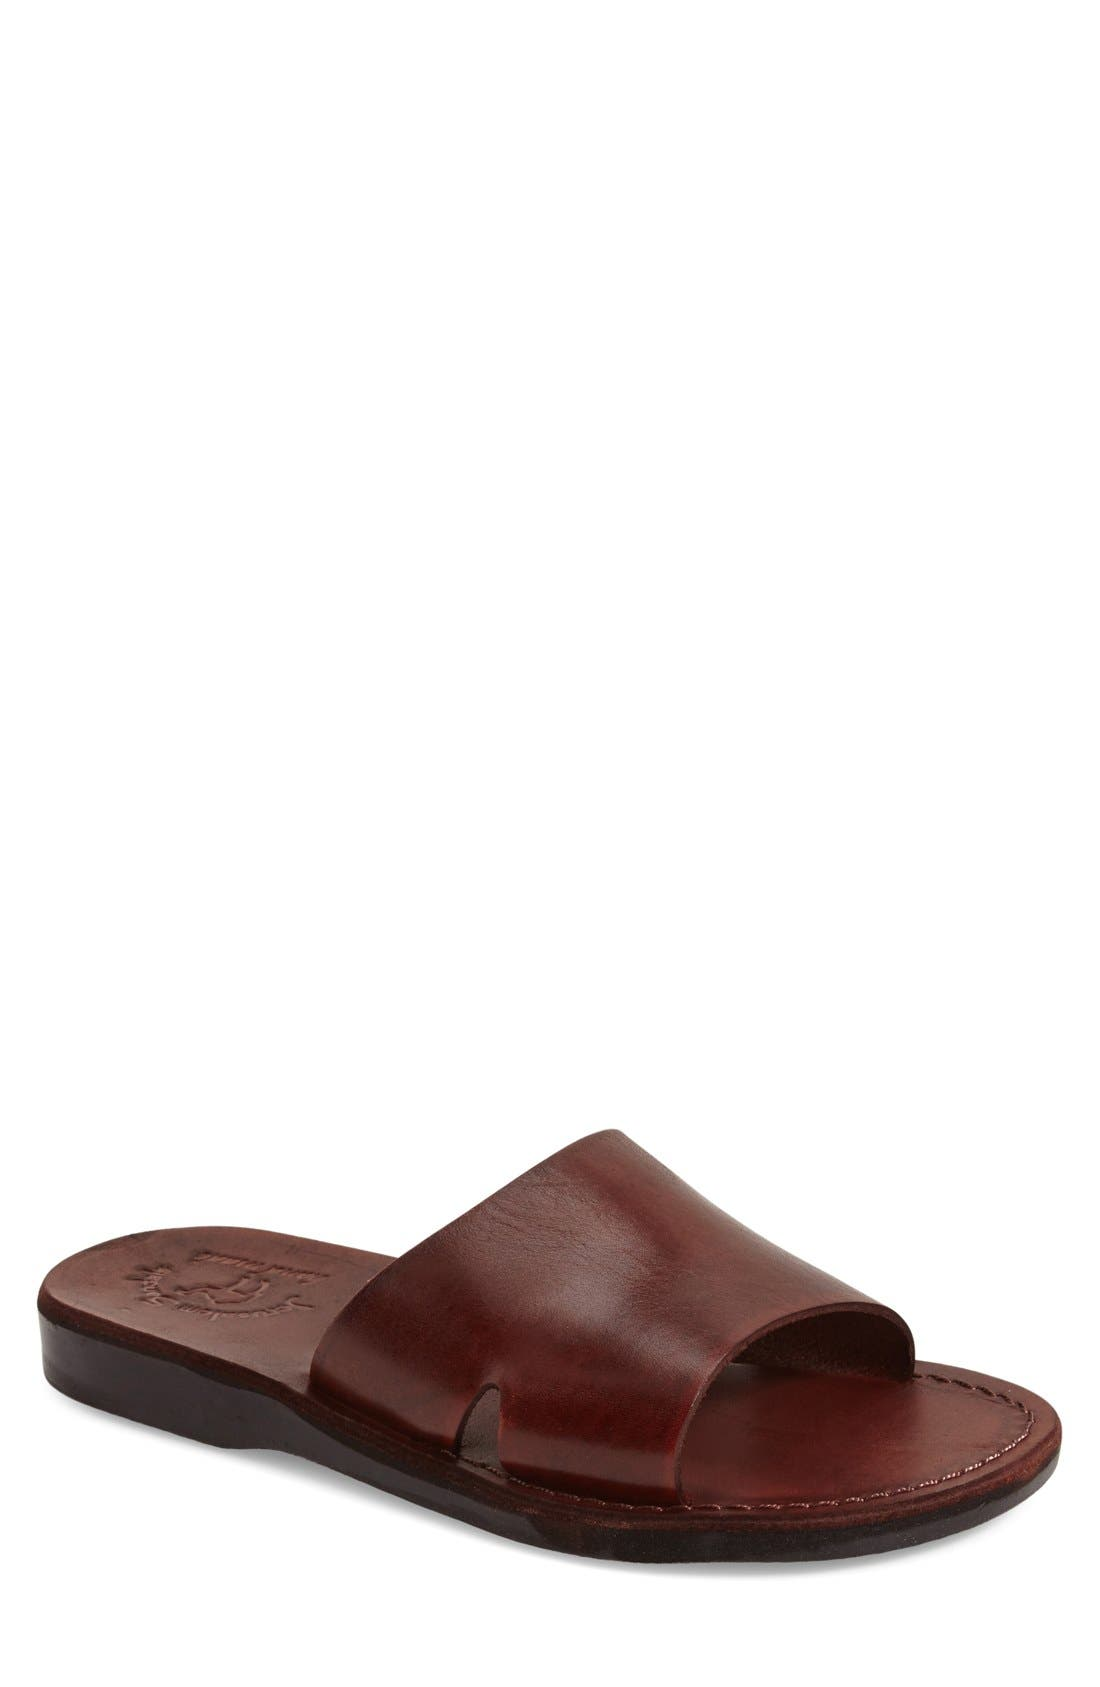 'Bashan' Sandal,                             Main thumbnail 1, color,                             Brown Leather